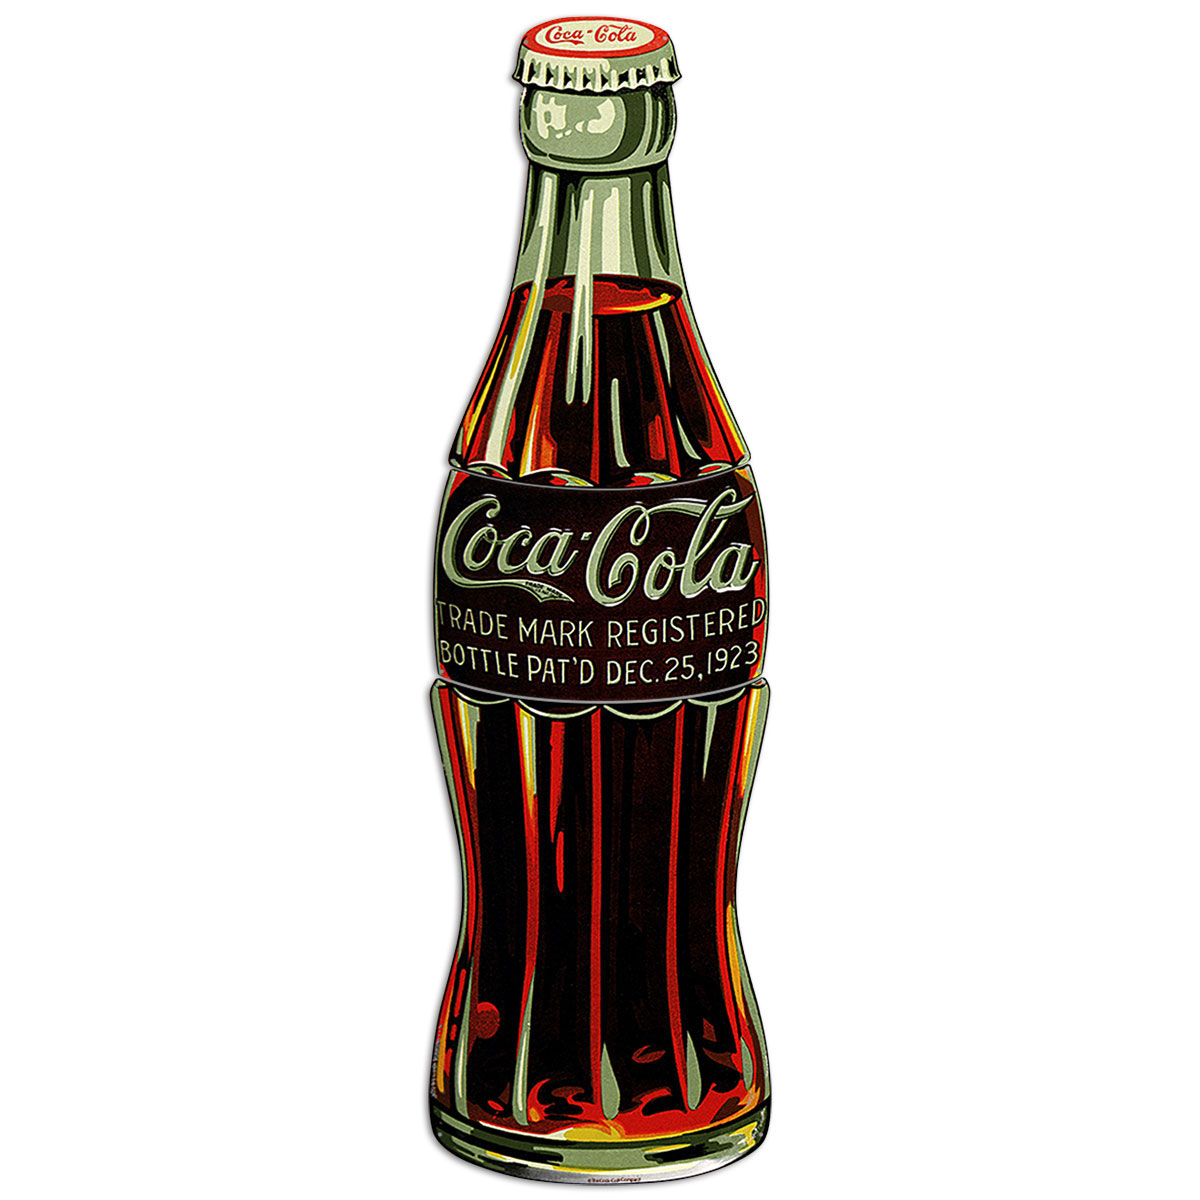 Coca Cola Bottle Patented 1923 Large Metal Signs At Retro